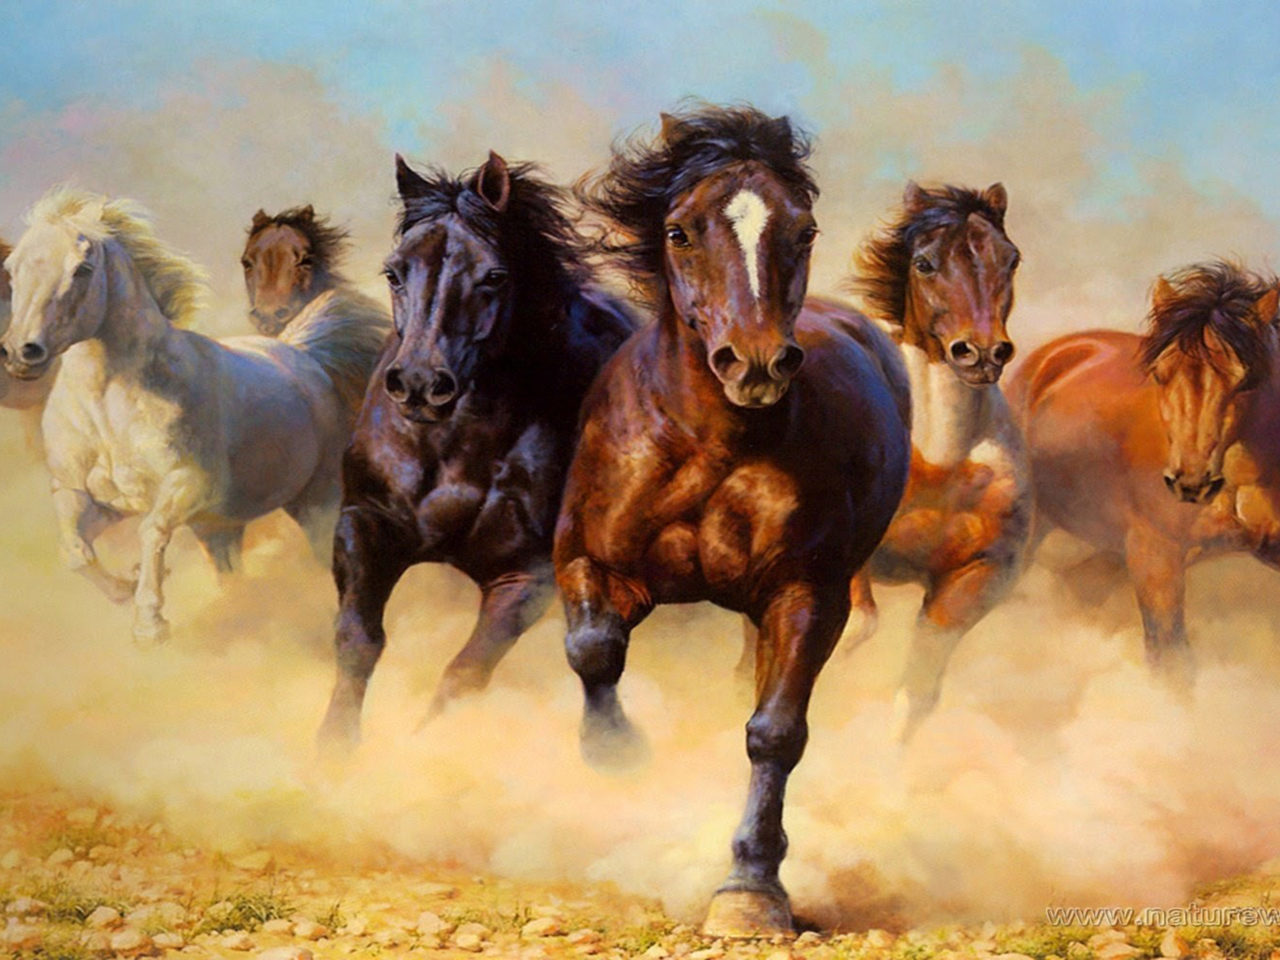 Animal Desktop Wallpaper Animals Wild Horses Galloping Hd Wallpaper 3840x2400